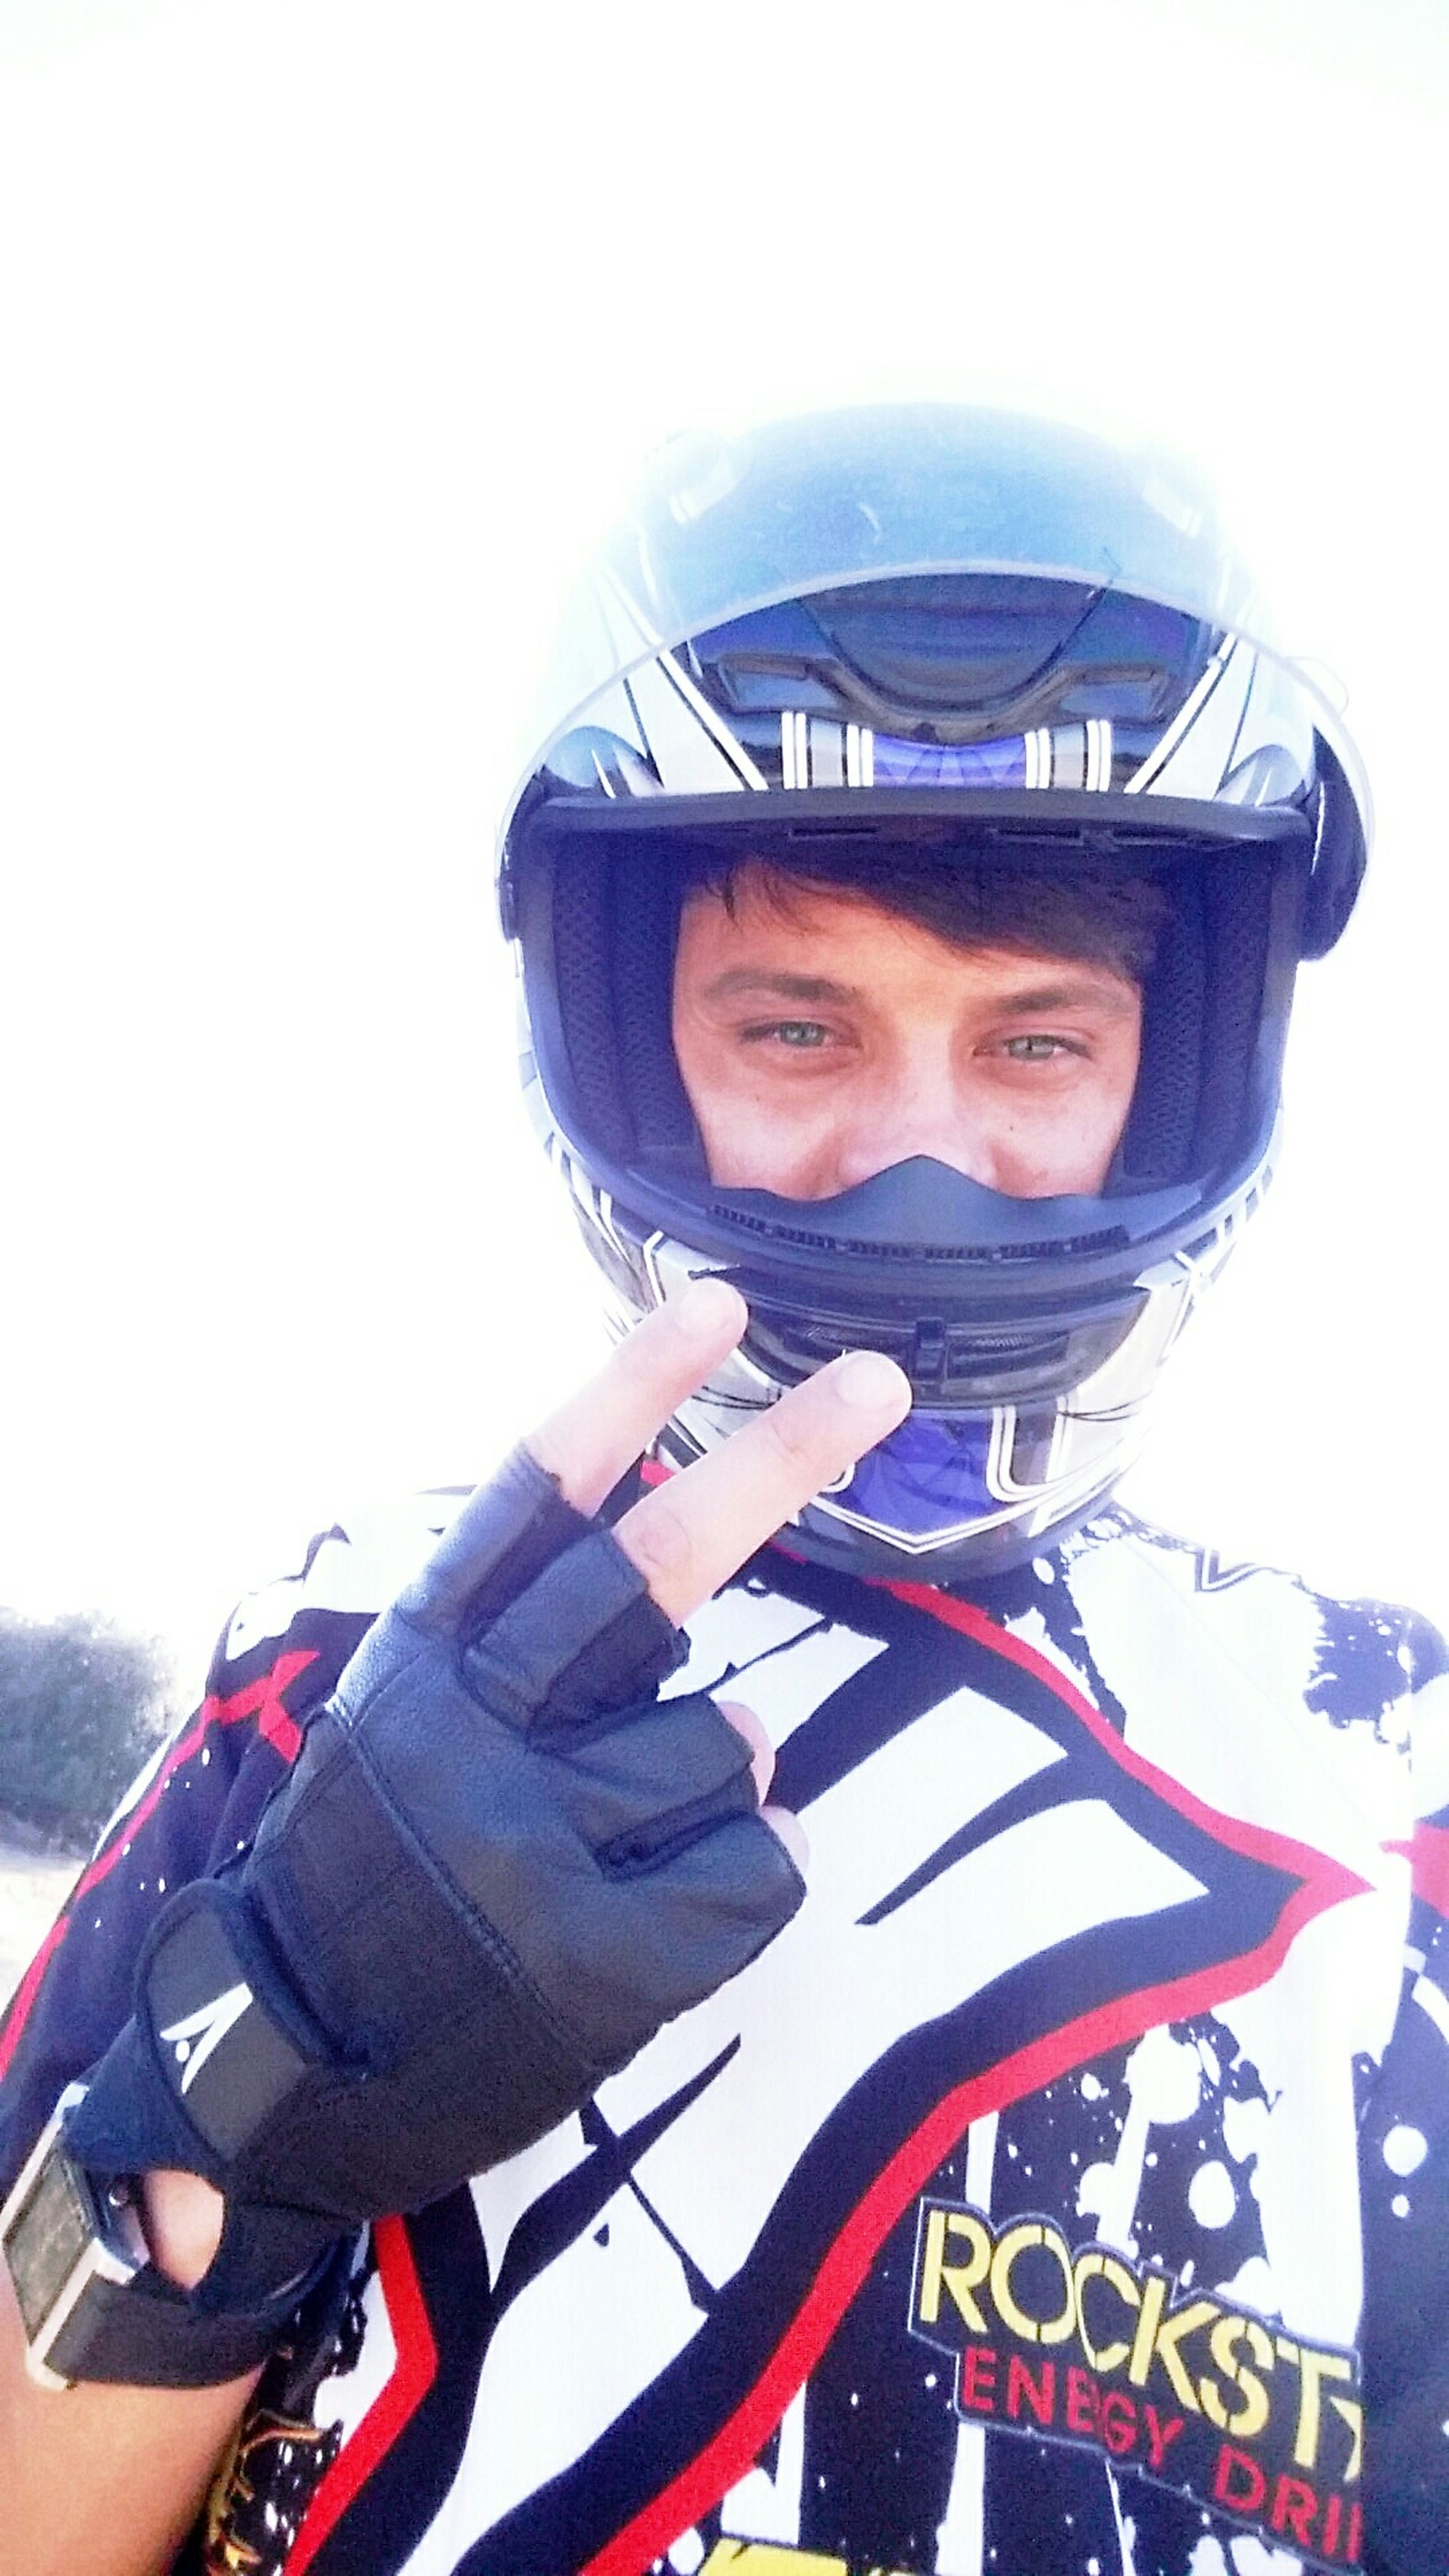 Selfie ✌ Drivesafe Ktm Nature That's Me! Relaxing Felling Good  Happy Peoplepeace SafeDrive